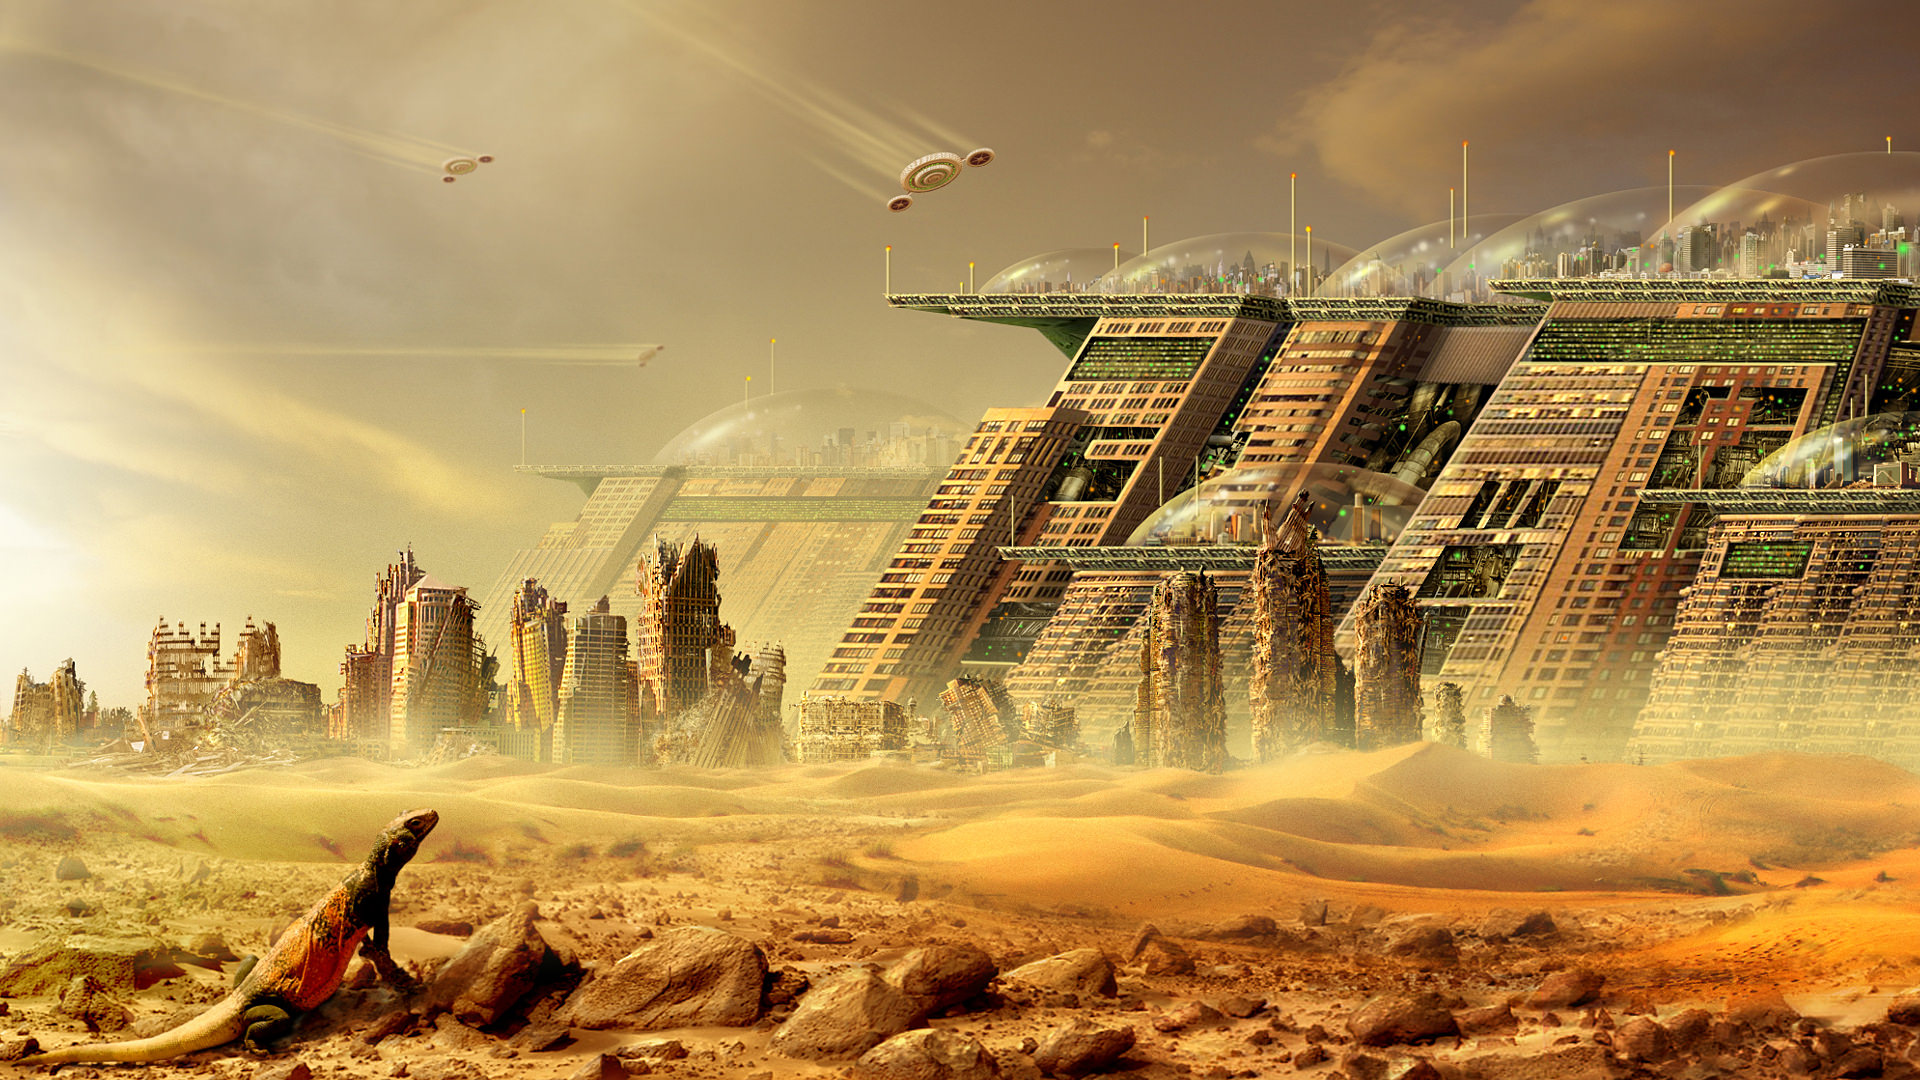 The New Desert City